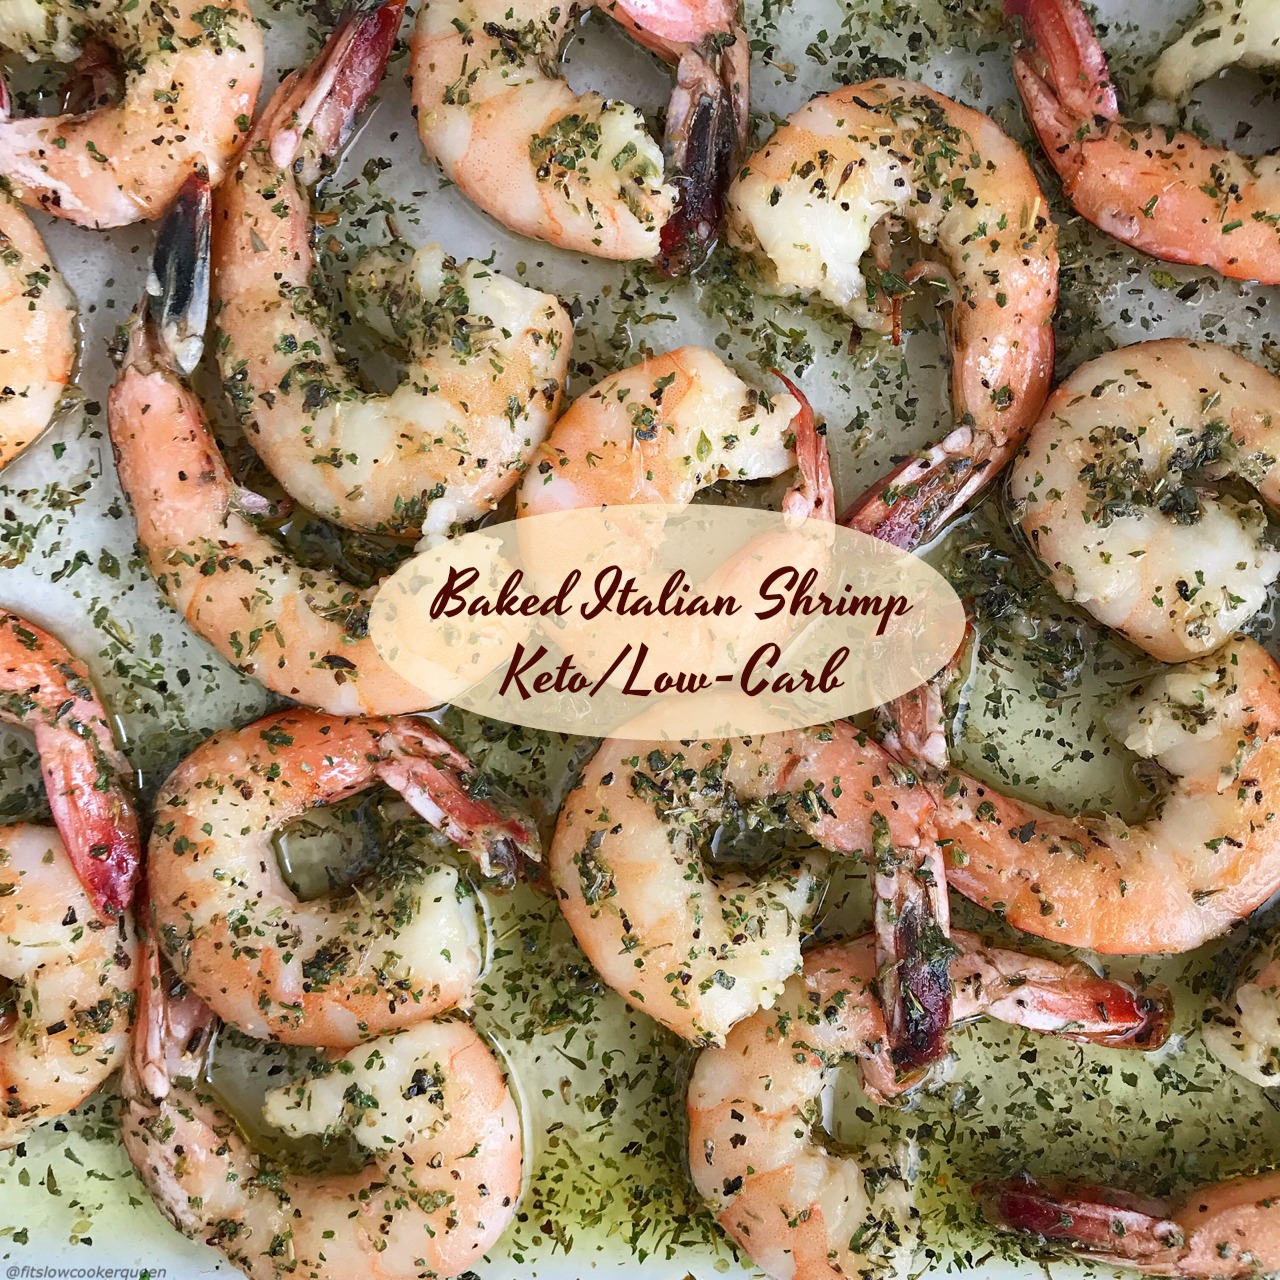 These baked Italian shrimp are low-carb, keto, paleo, whole30 and easy to make.Using a homemade Italian salad dressing mix, this cooks in less than 20 min!